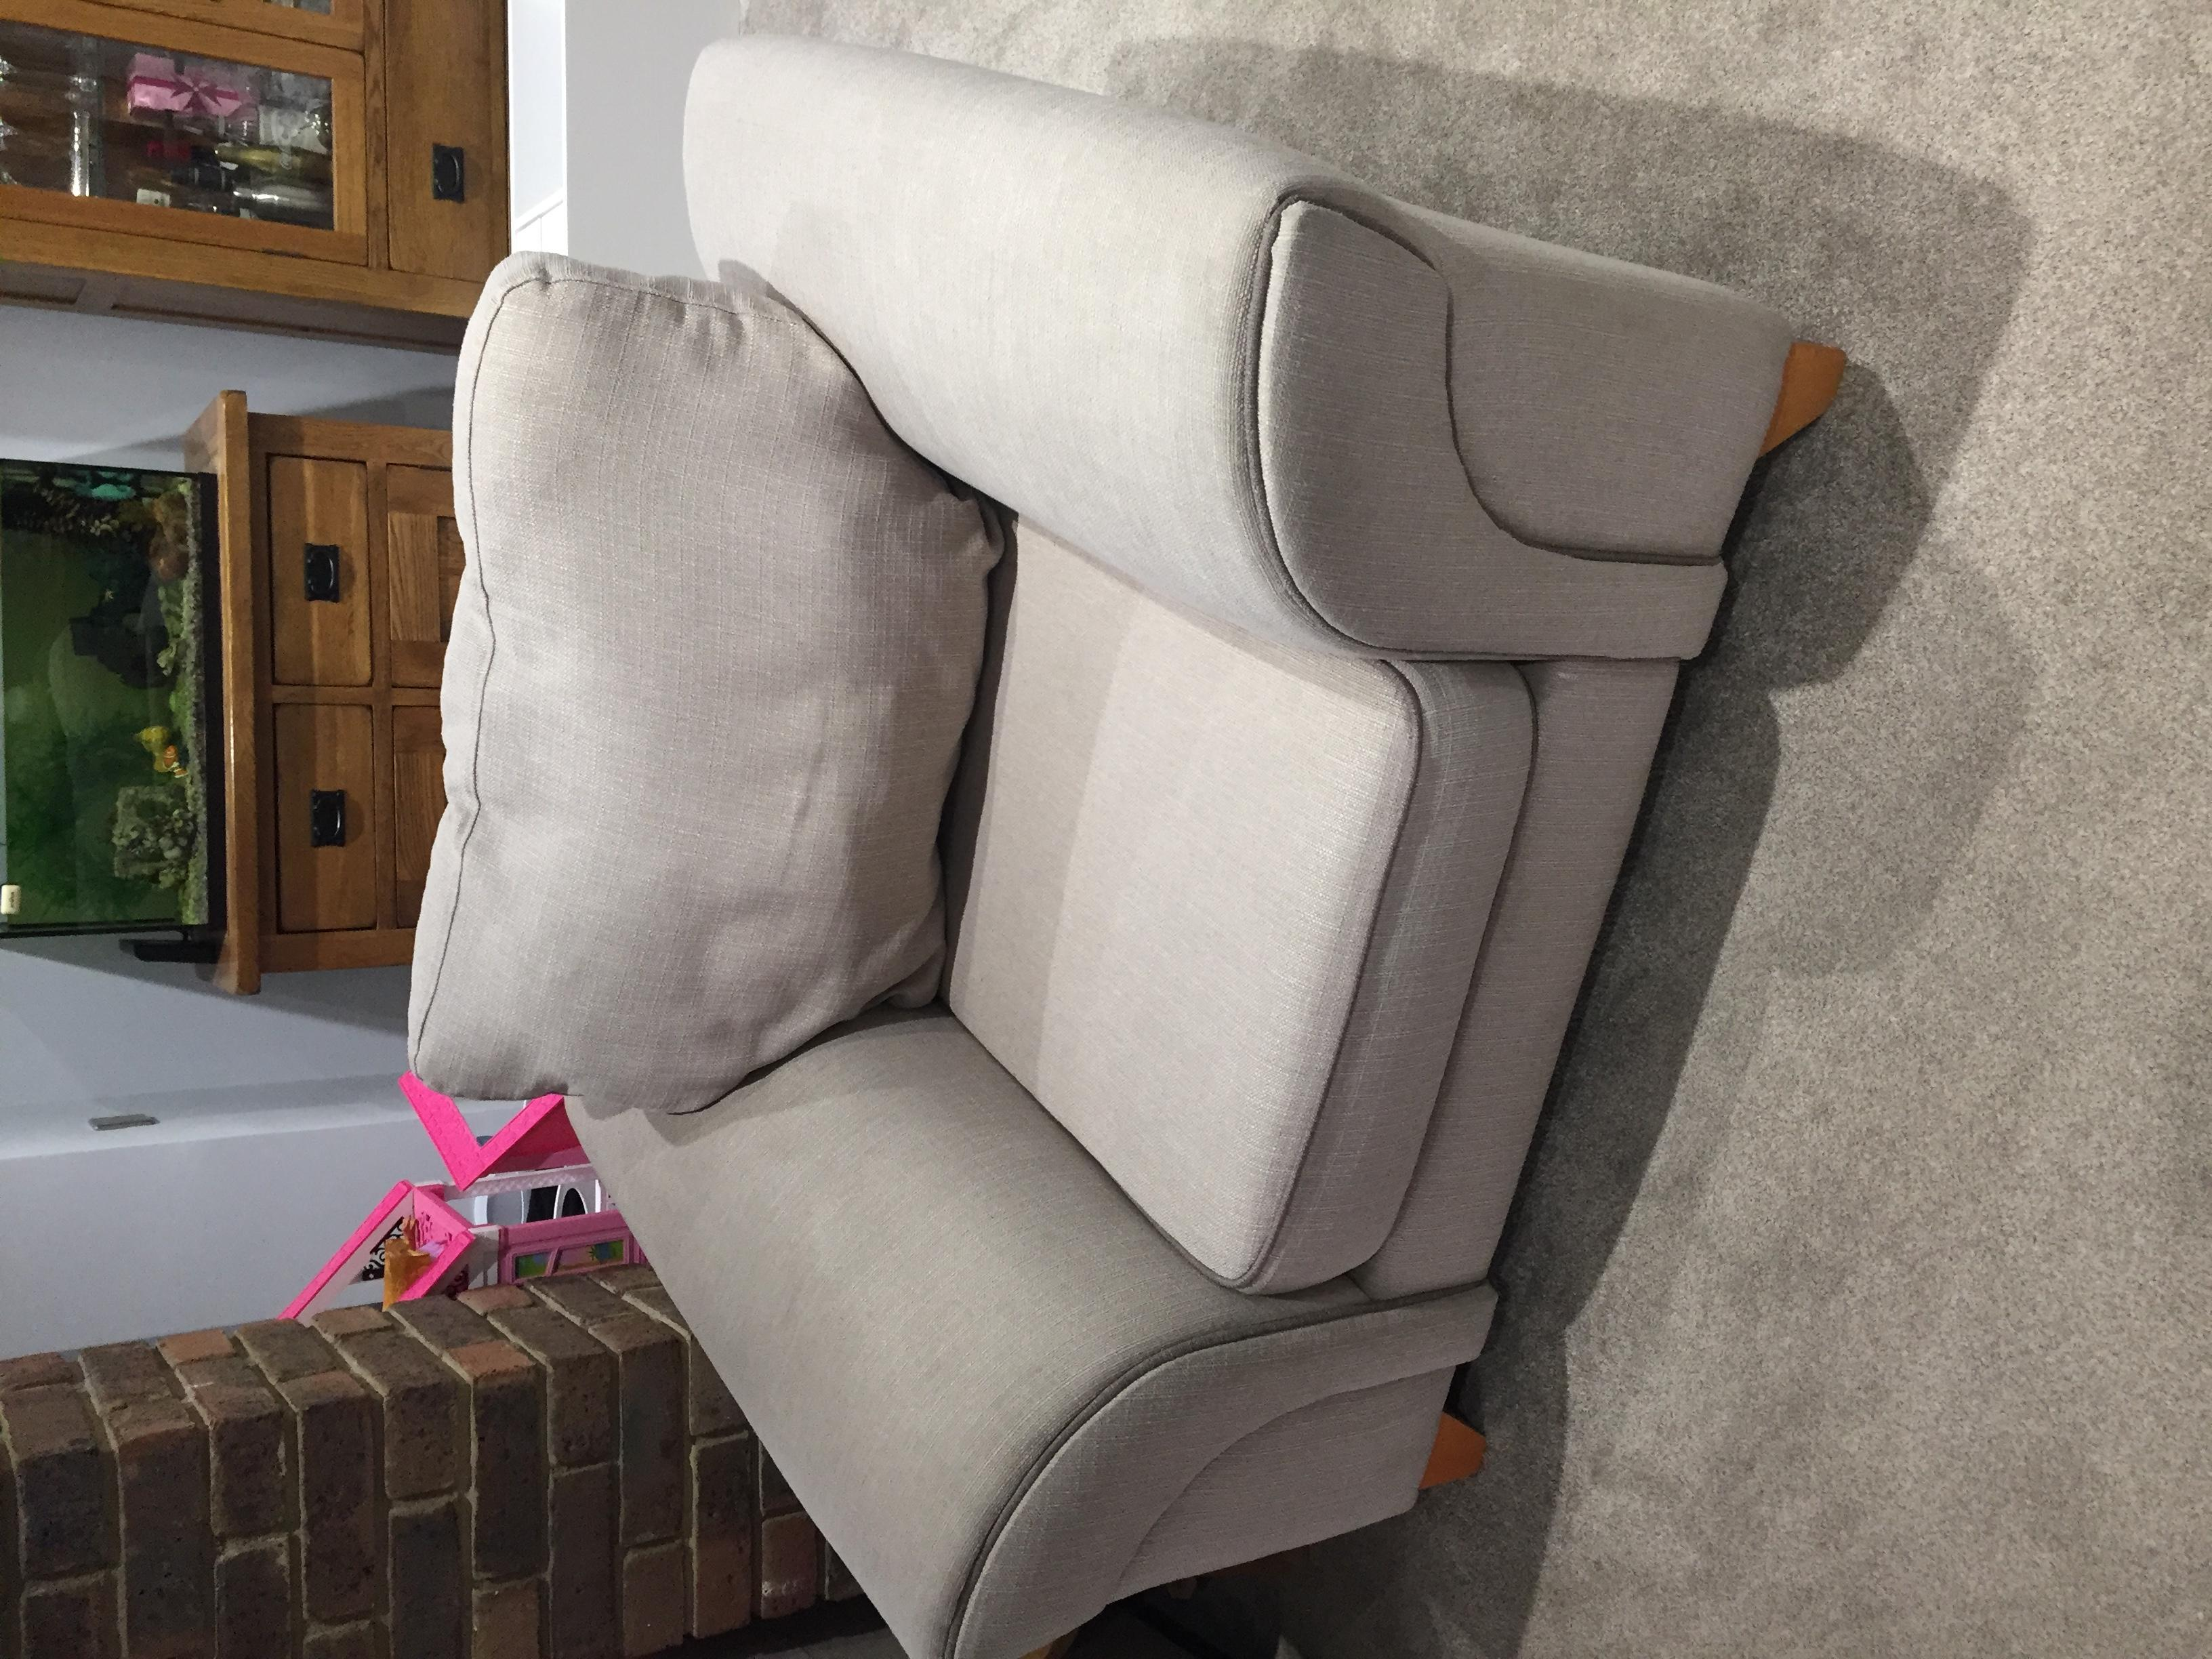 Fabulous 3 Seater Sofa And Armchair In Eastbourne Expired Friday Ad Pabps2019 Chair Design Images Pabps2019Com